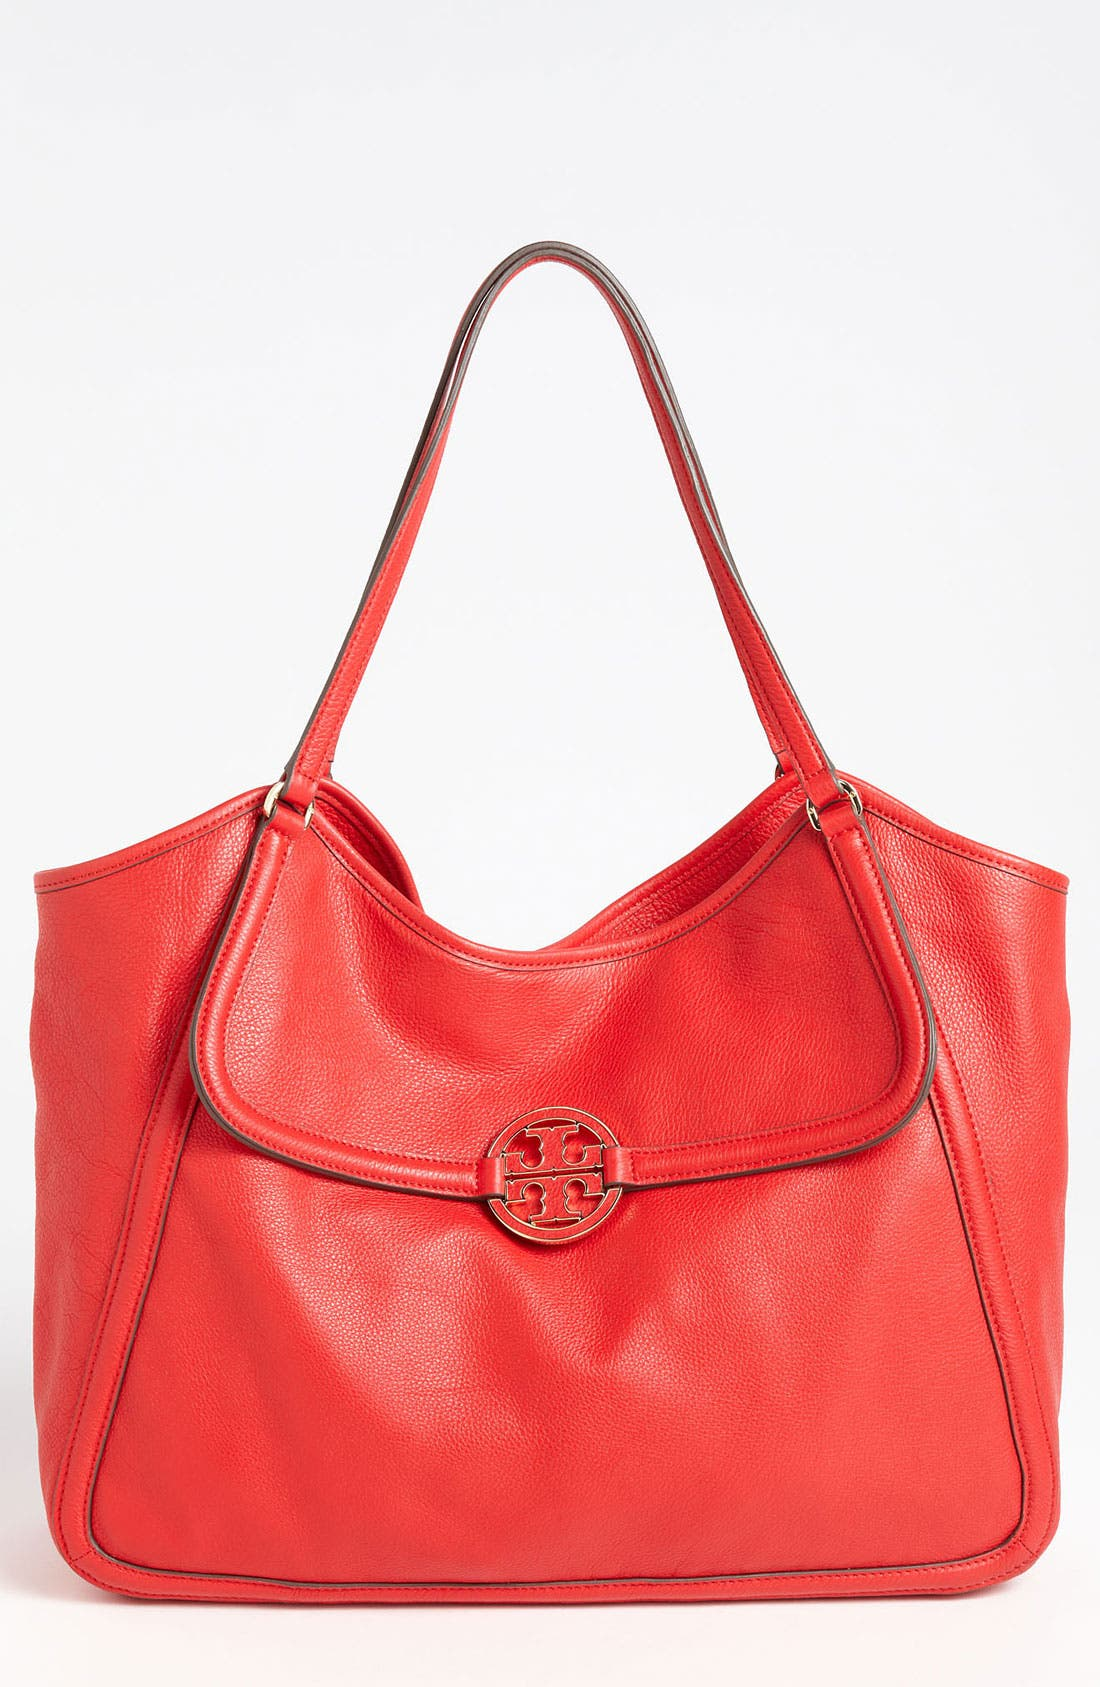 Alternate Image 1 Selected - Tory Burch 'Amanda' Leather Tote